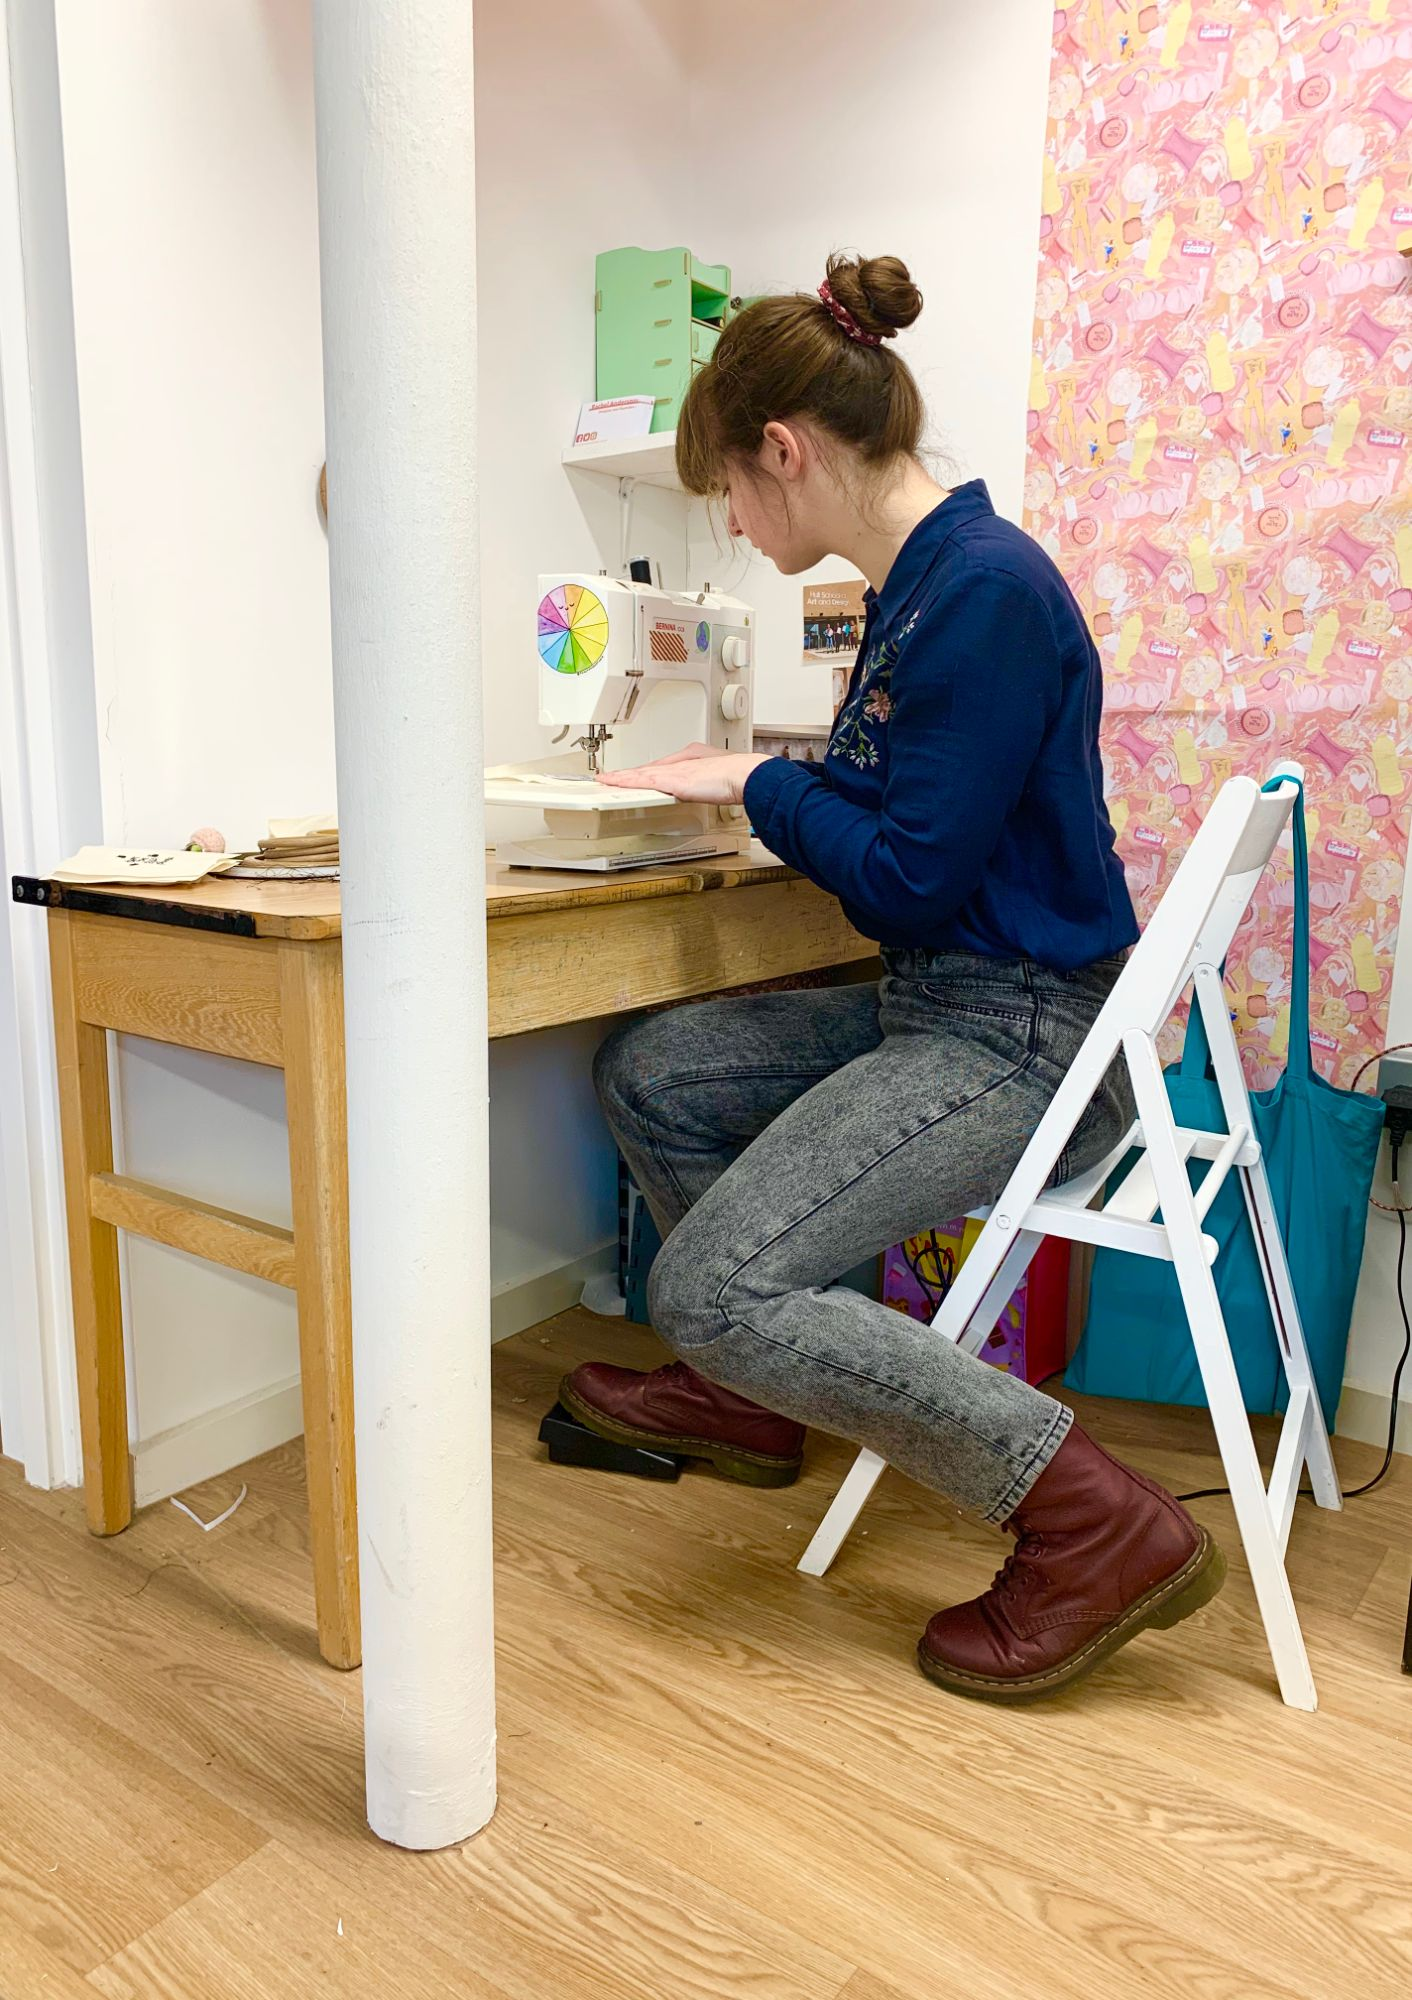 Rachel sat at her desk in her studio using a sewing machine